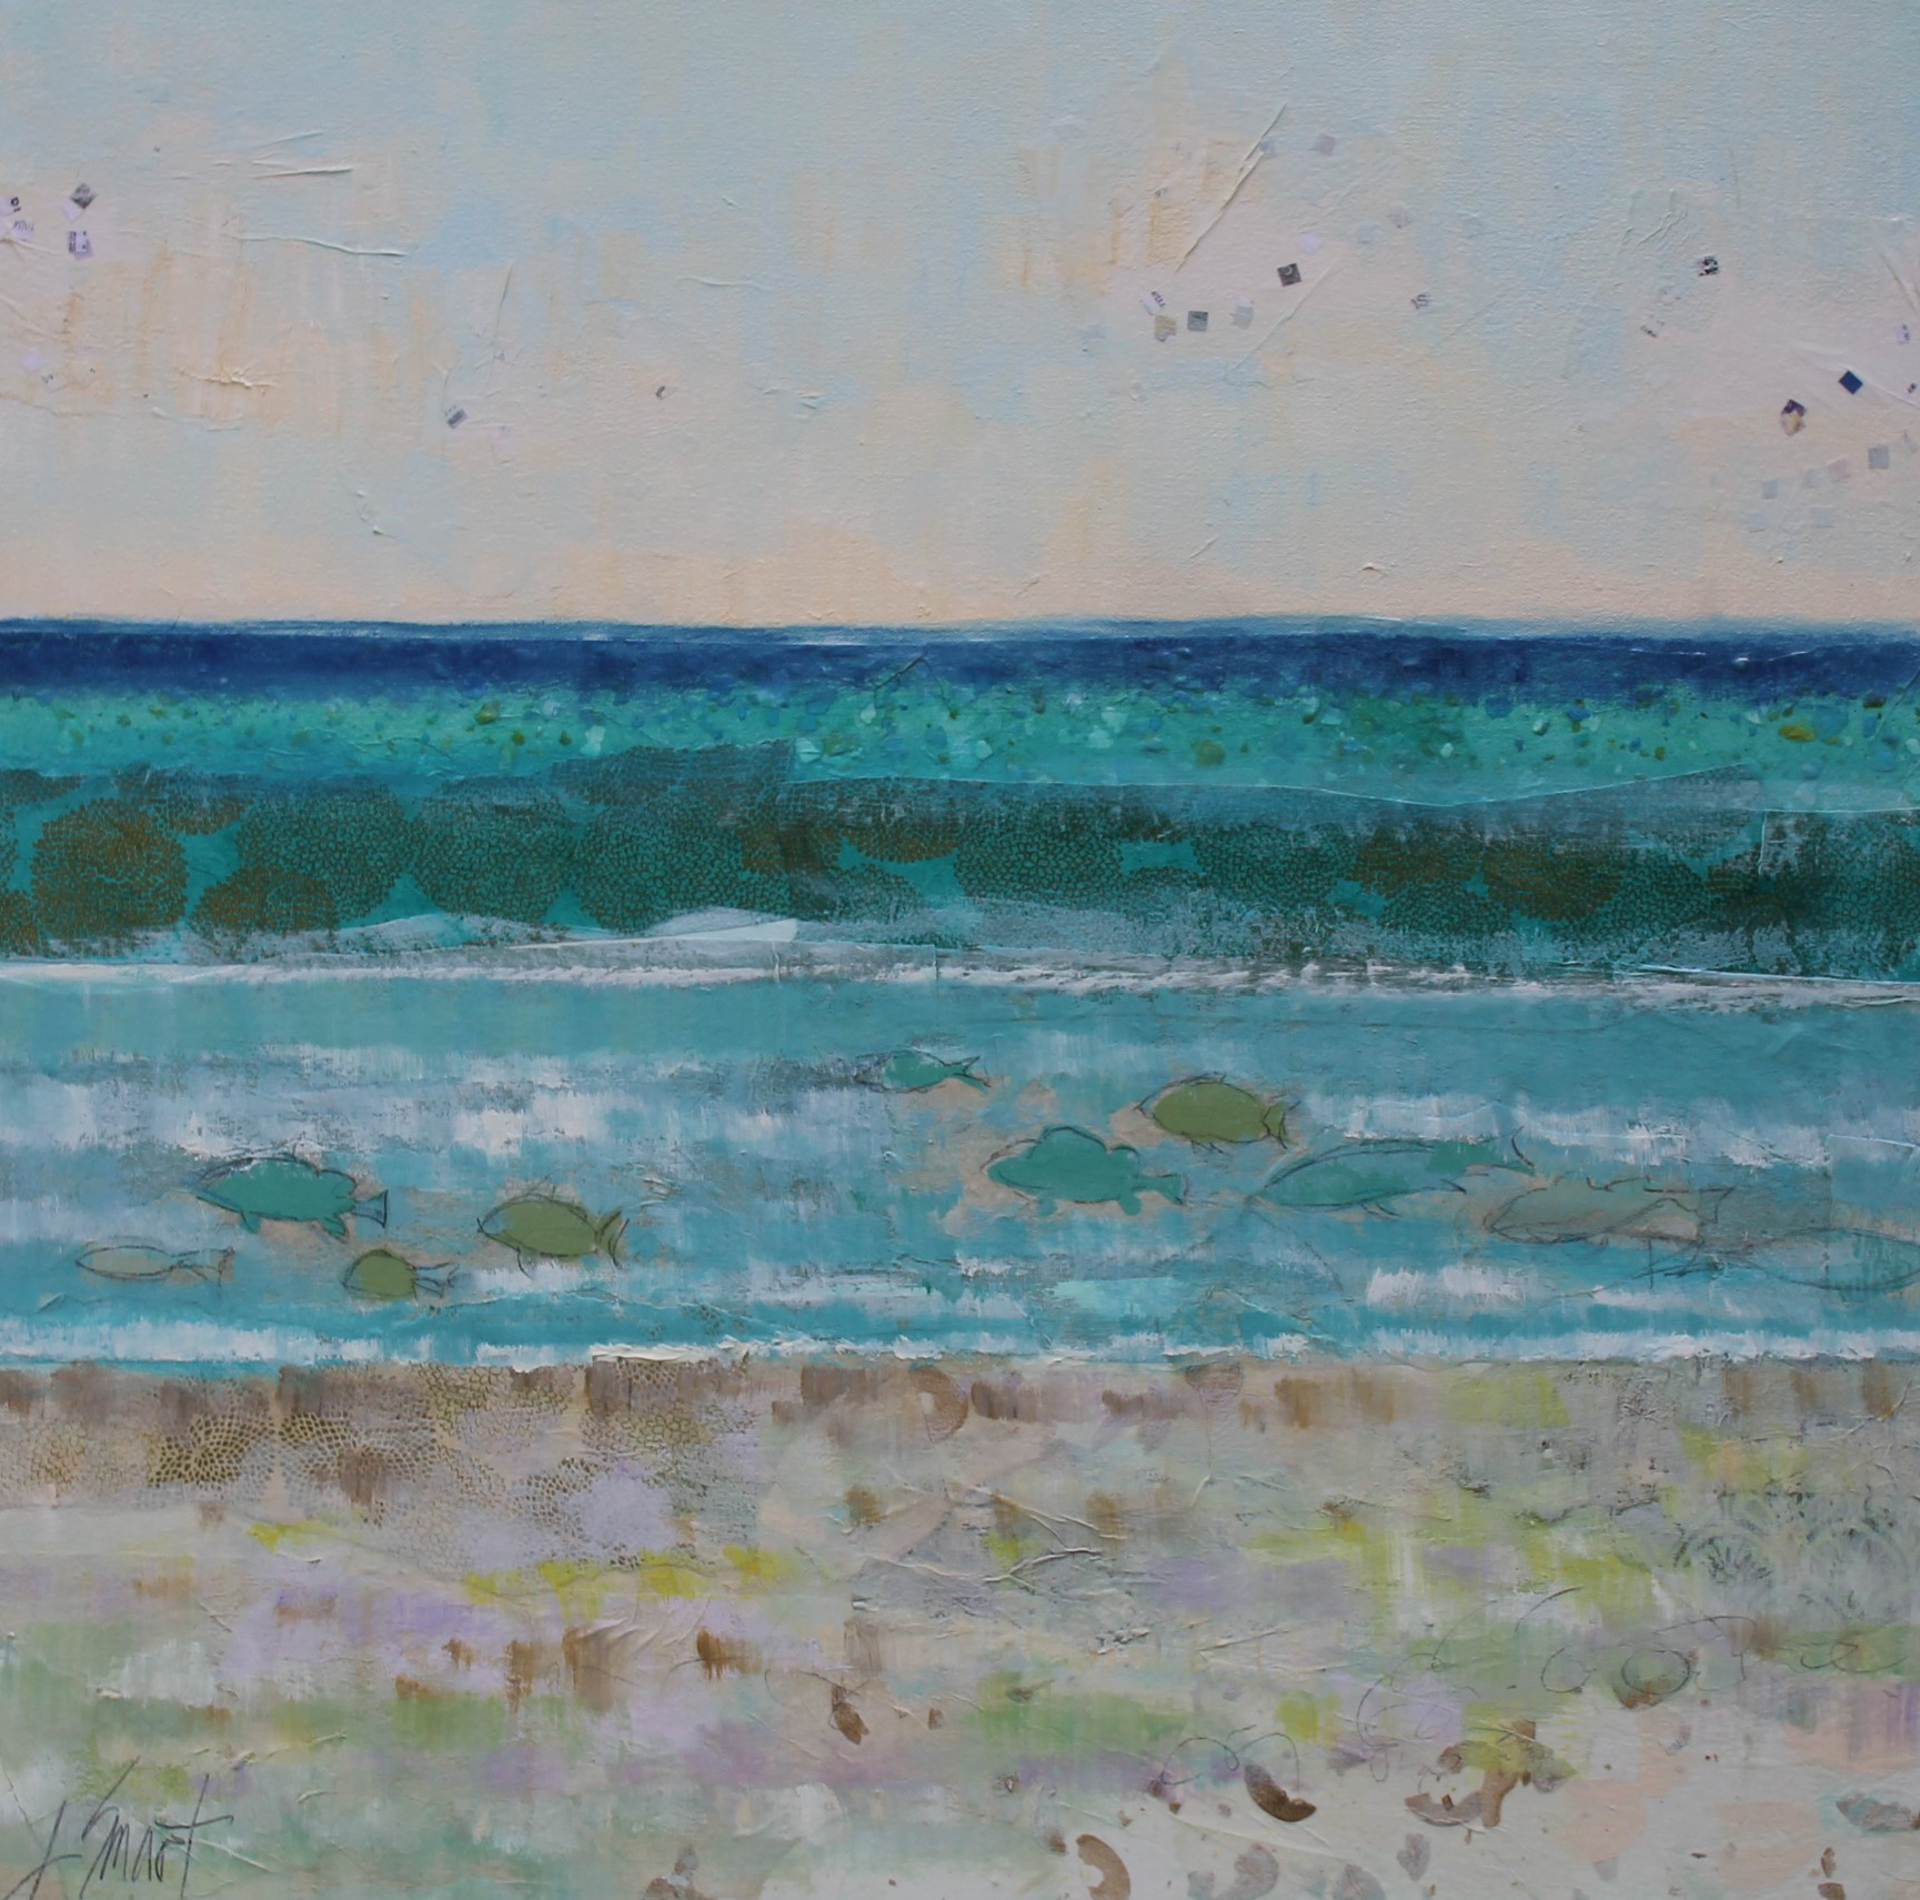 Ocean View I by Libby Smart